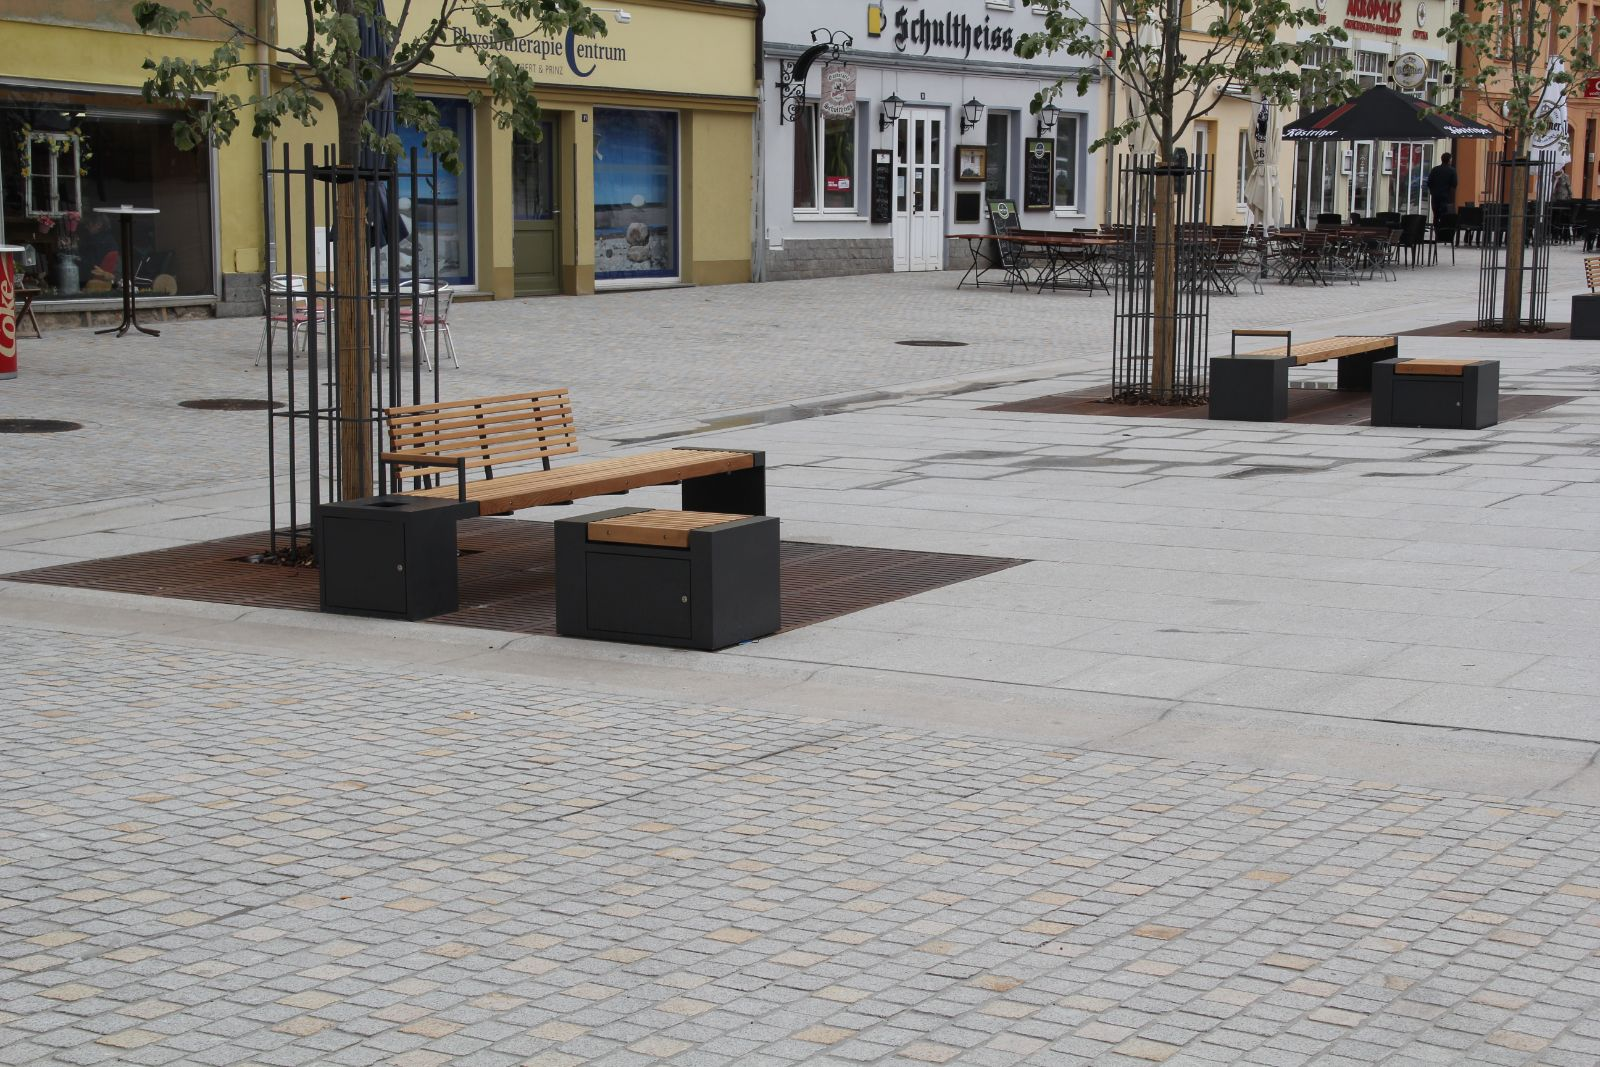 euroform w - urban furniture - benches - seatings - customized